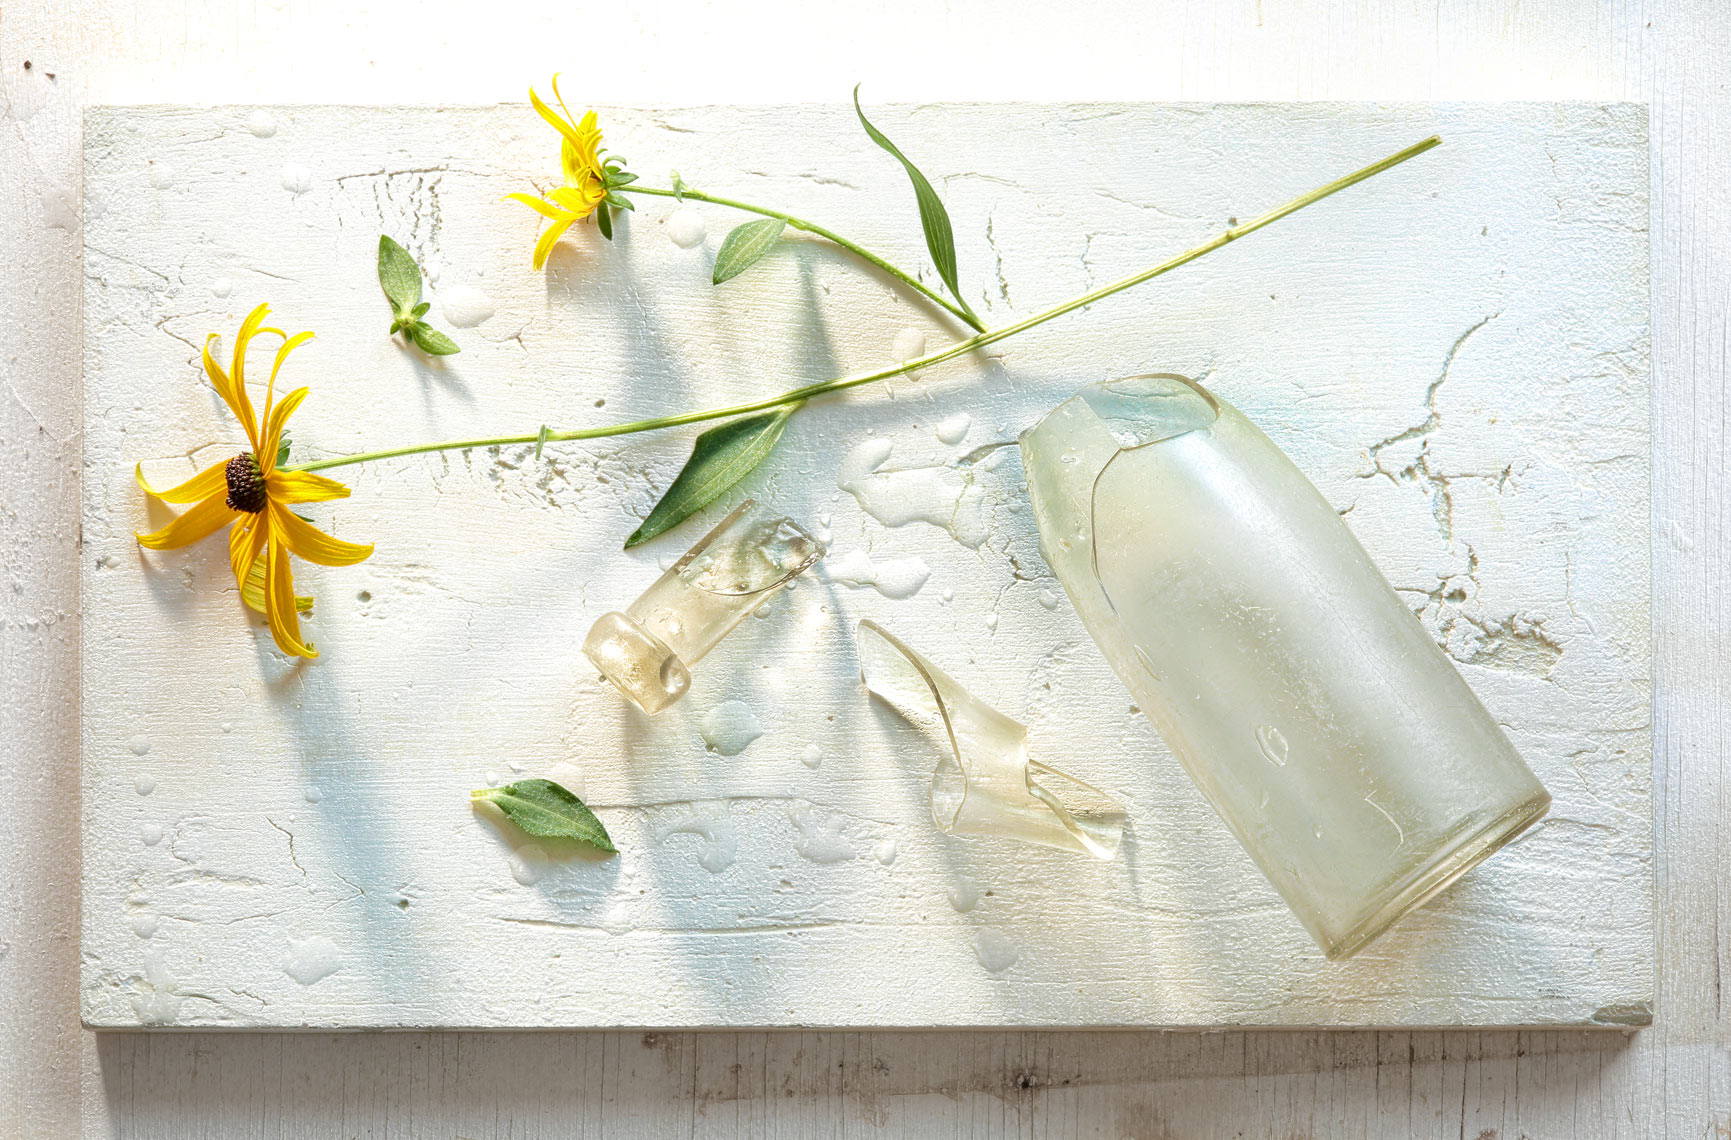 Flower with Broken Vase-Botanical Photography- © Aristo Studios